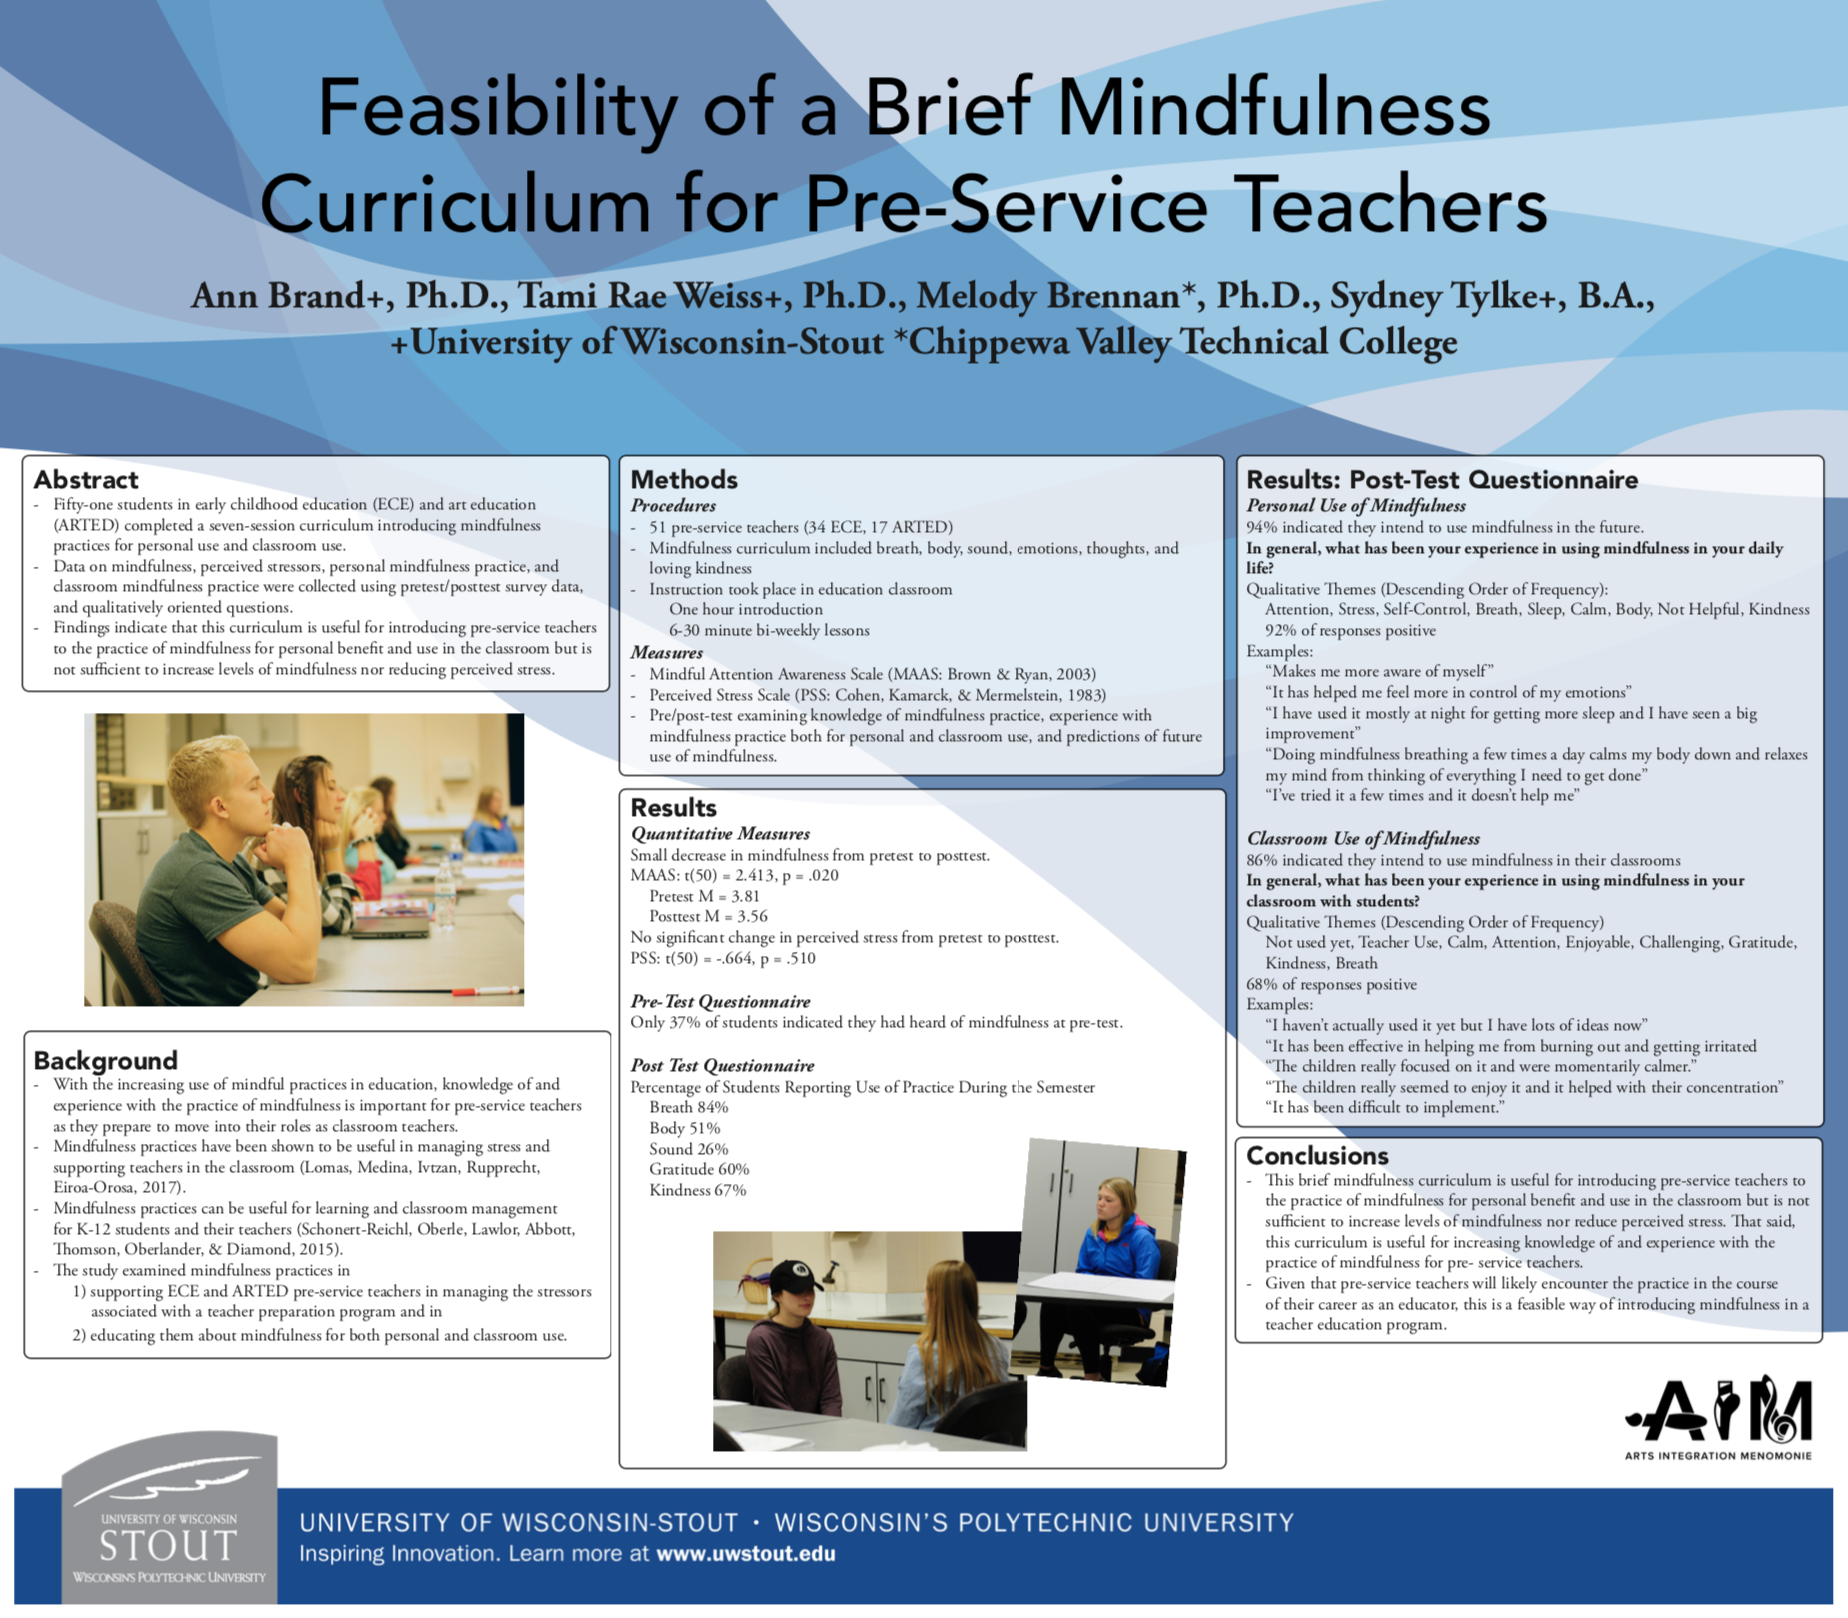 Brand, A. E., Weiss, T., … (March, 2018).  Feasibility of a brief mindfulness curriculum for pre-service teachers in art education and early childhood education.   Poster presented at The Contemplative Practices for 21st Century Higher Education conference, Chapel Hill, NC, United States.